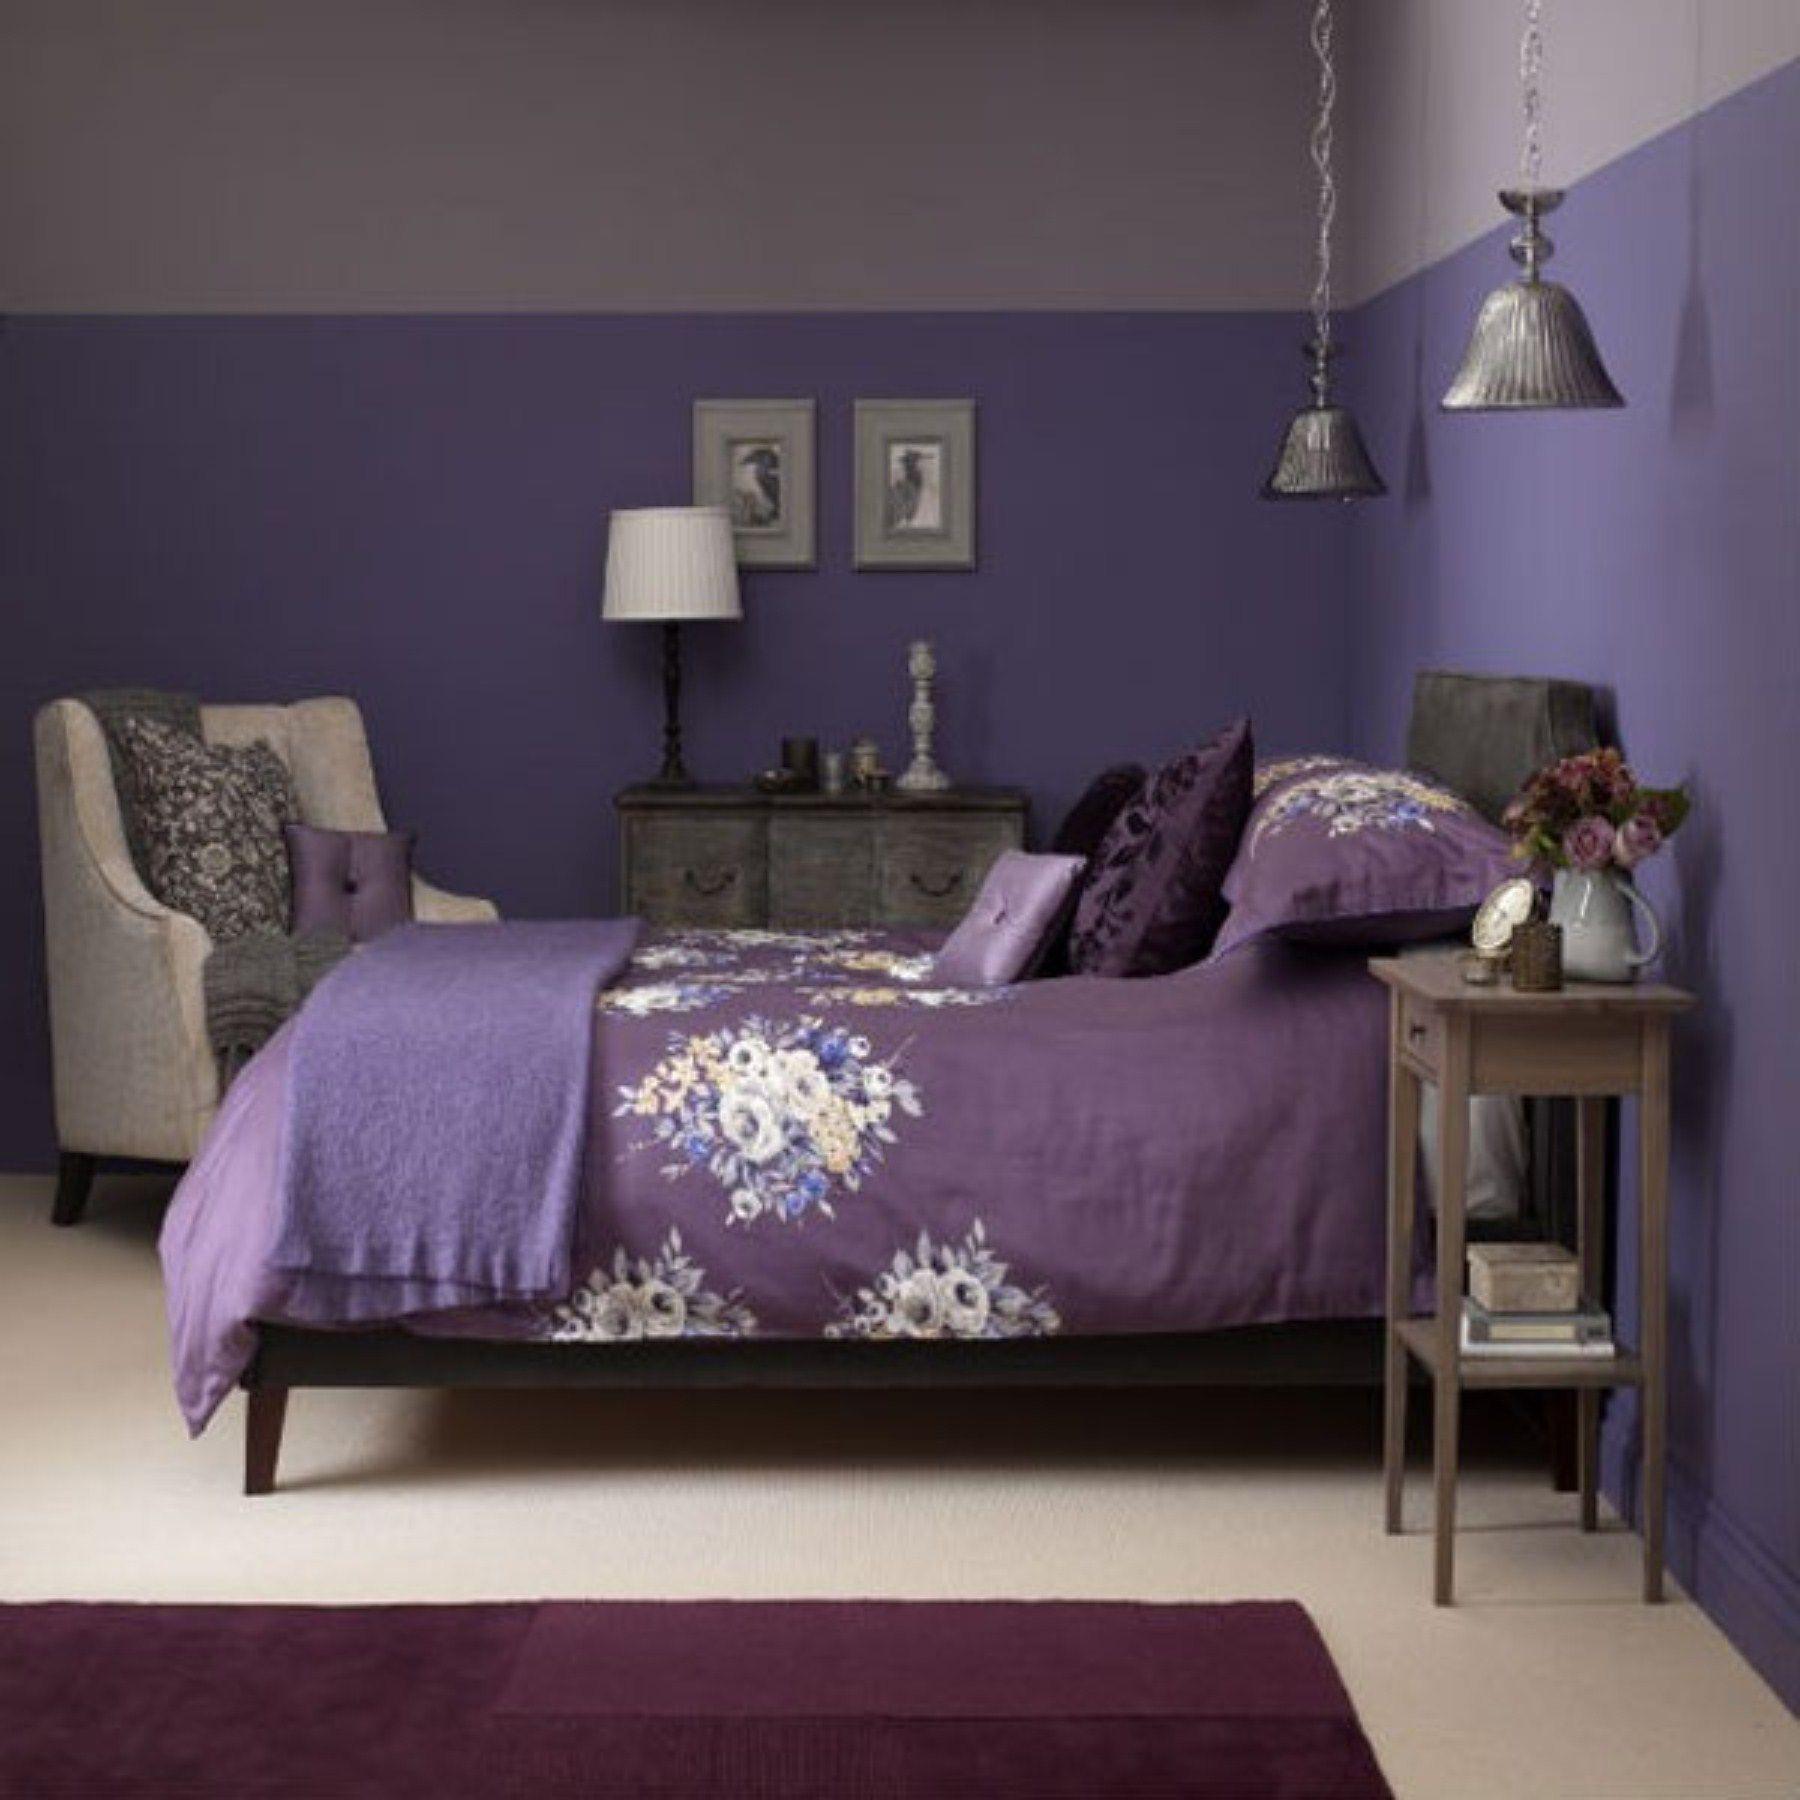 purple furniture. Bedroom Interior Furniture Kids Design Ideas Modern Large Excerpt Rustic Theme With Purple Wall Paint For Small Spaces Using Ceiling Lights. Beach House C